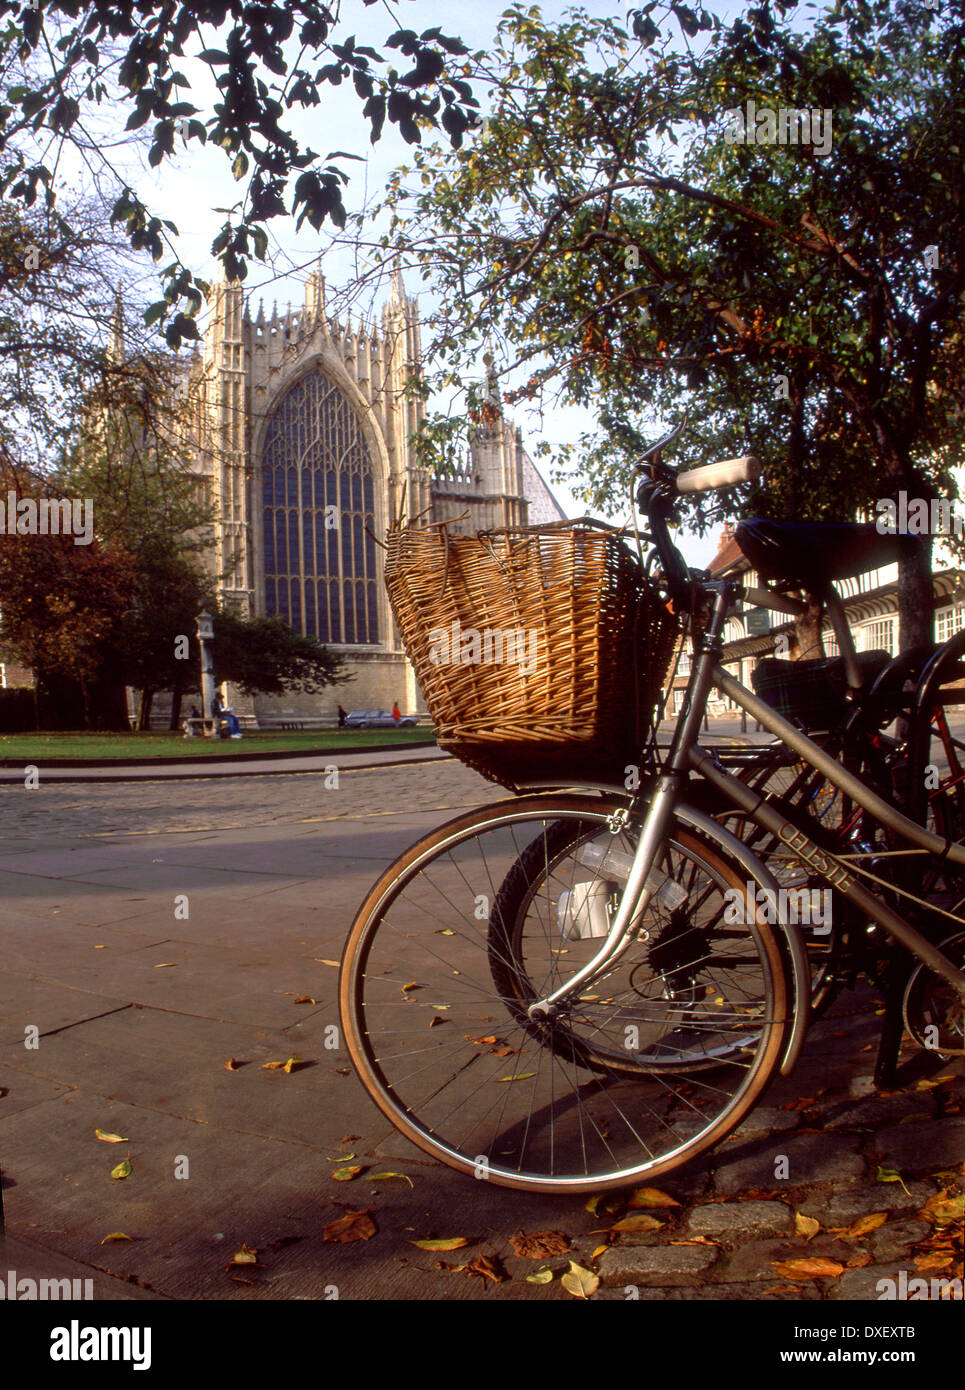 View towards the East gable of york minster with cycle in foreground.City of york - Stock Image